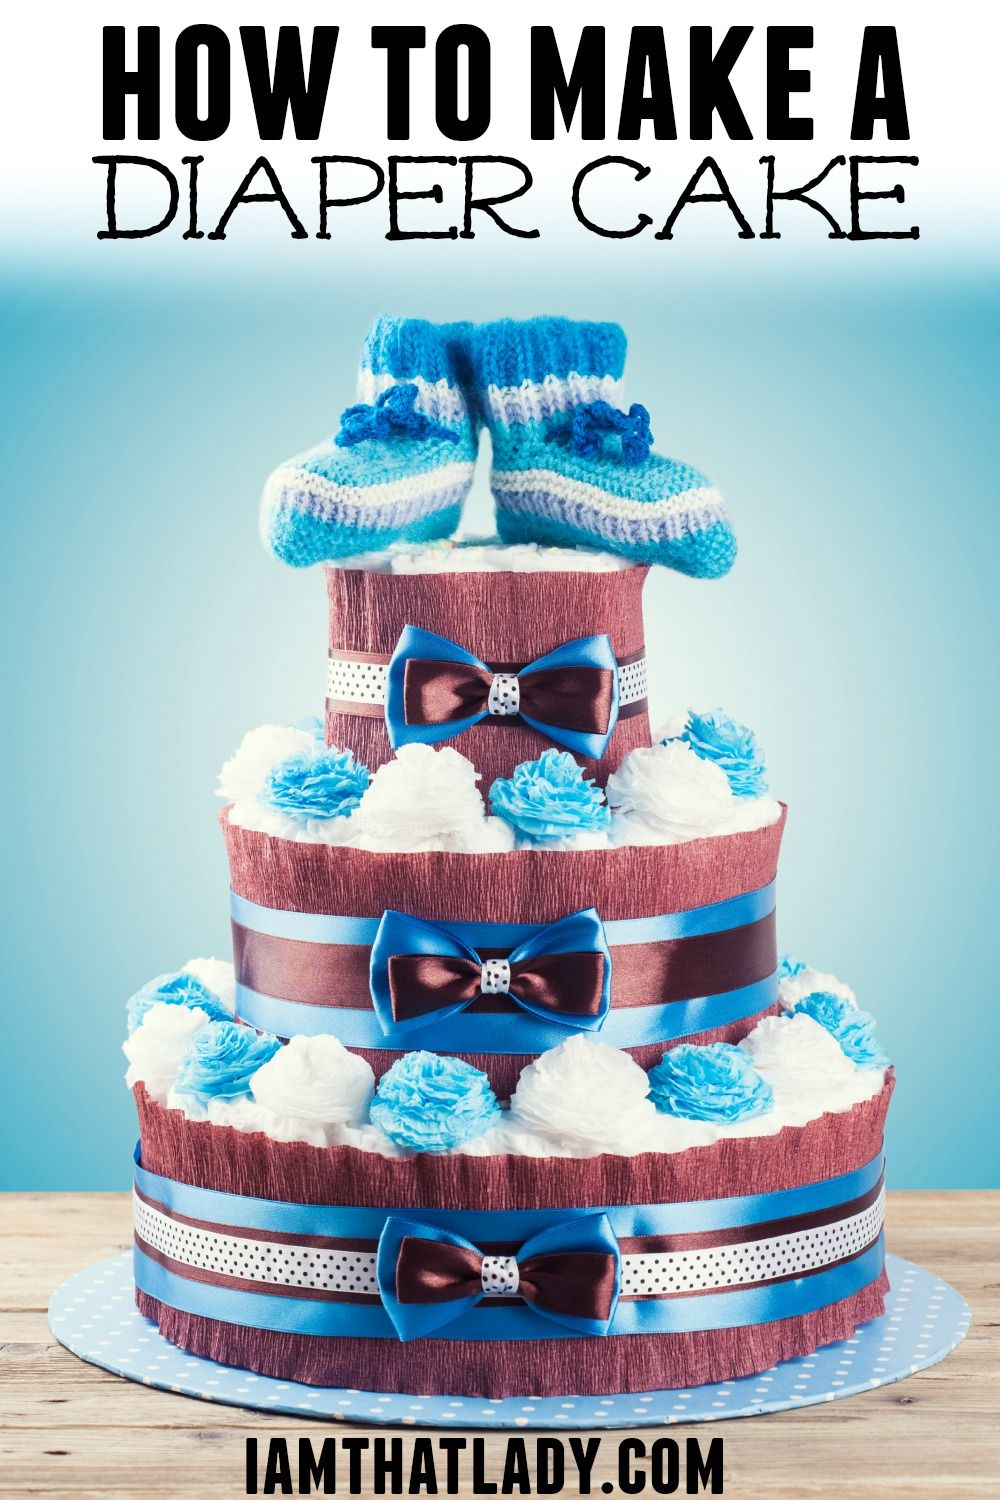 Here are the step by step instructions on how to make a diaper cake. Learn how many diapers you will need, and how to keep it together.